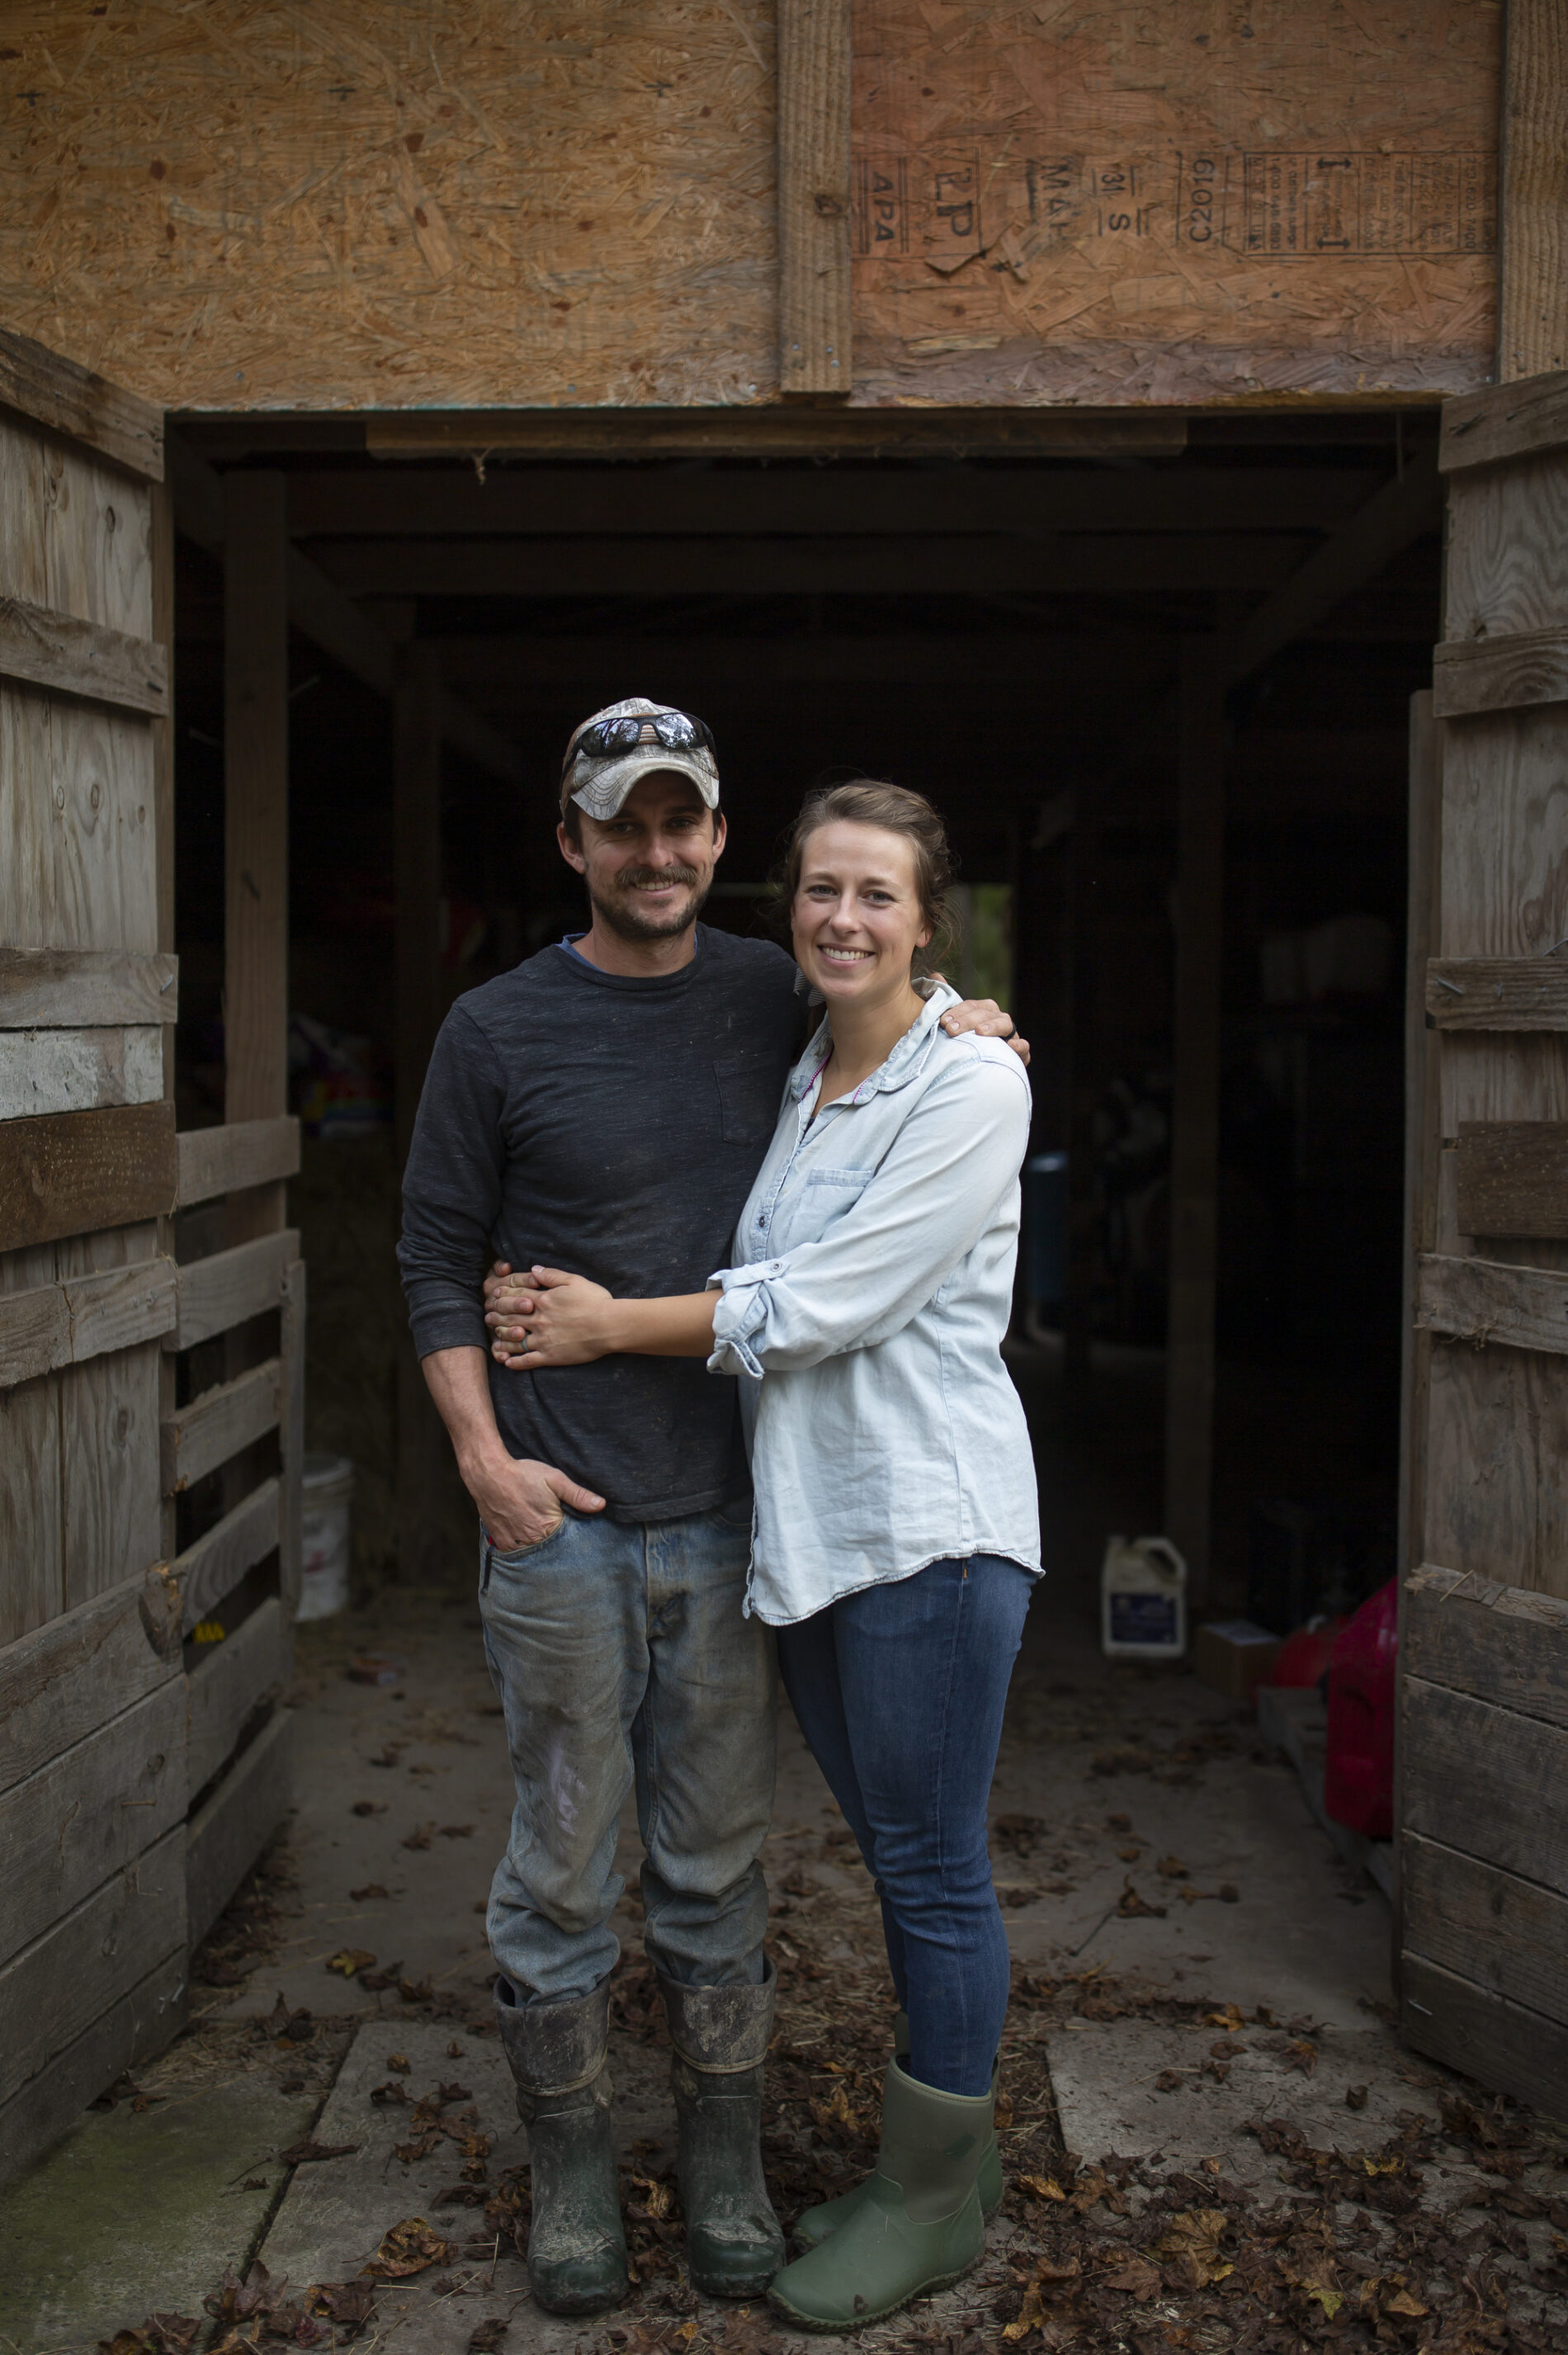 Joe Shenk, left, and Rachel Shenk, right, stand on their farm in Newport, N.C., on Nov. 15, 2020. The Shenks started their farm in 2017 with a desire to create a life that allowed them to focus on working together as a family. They now farm turkeys, chickens, and pigs. They hope to add cows in the near future as they continue to farm full-time. [Madeline Gray for NPR]